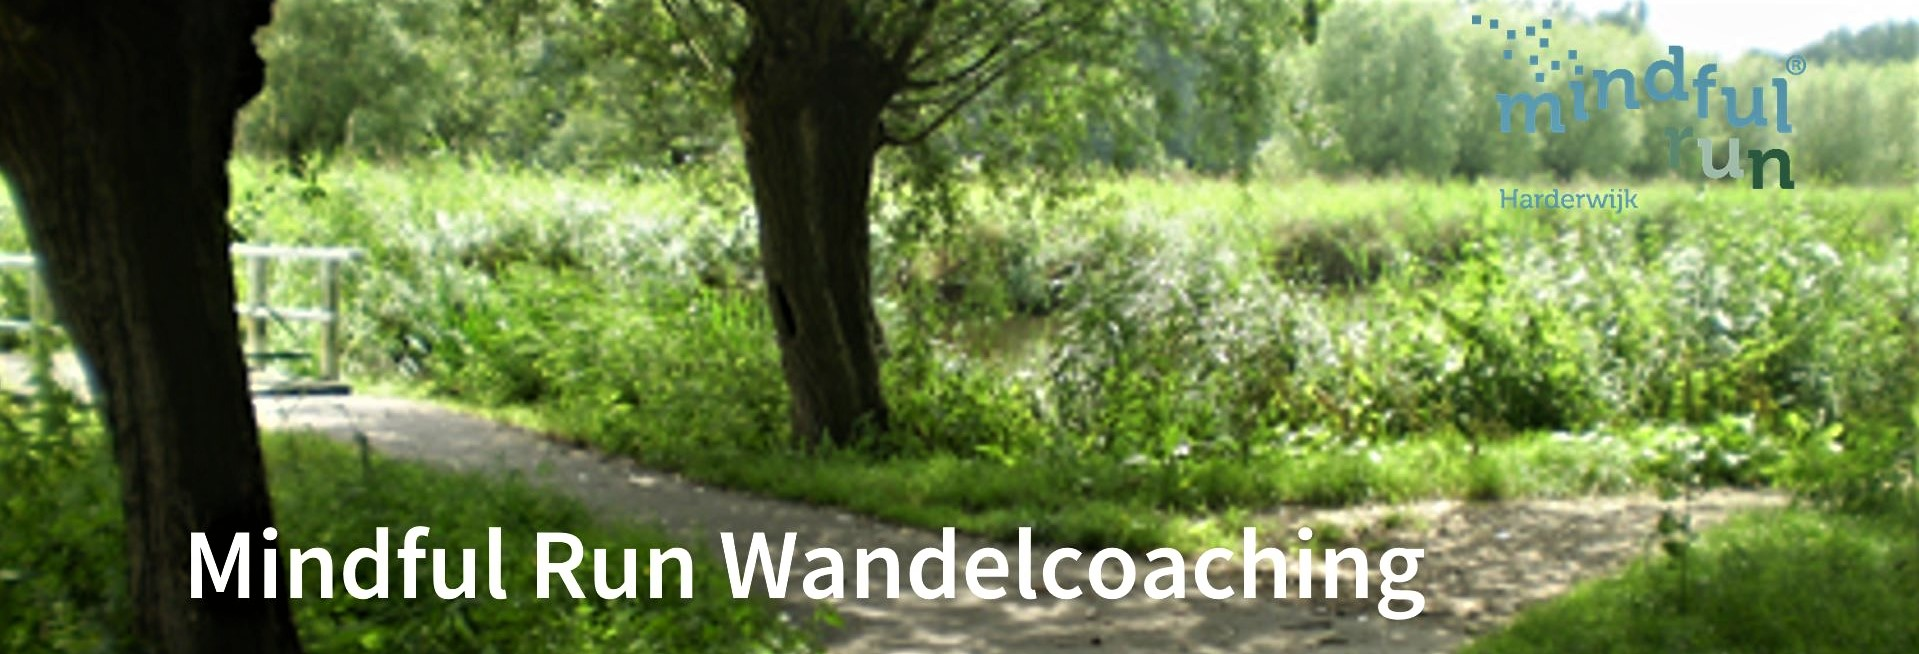 Mindful Run Wandelcoaching plat